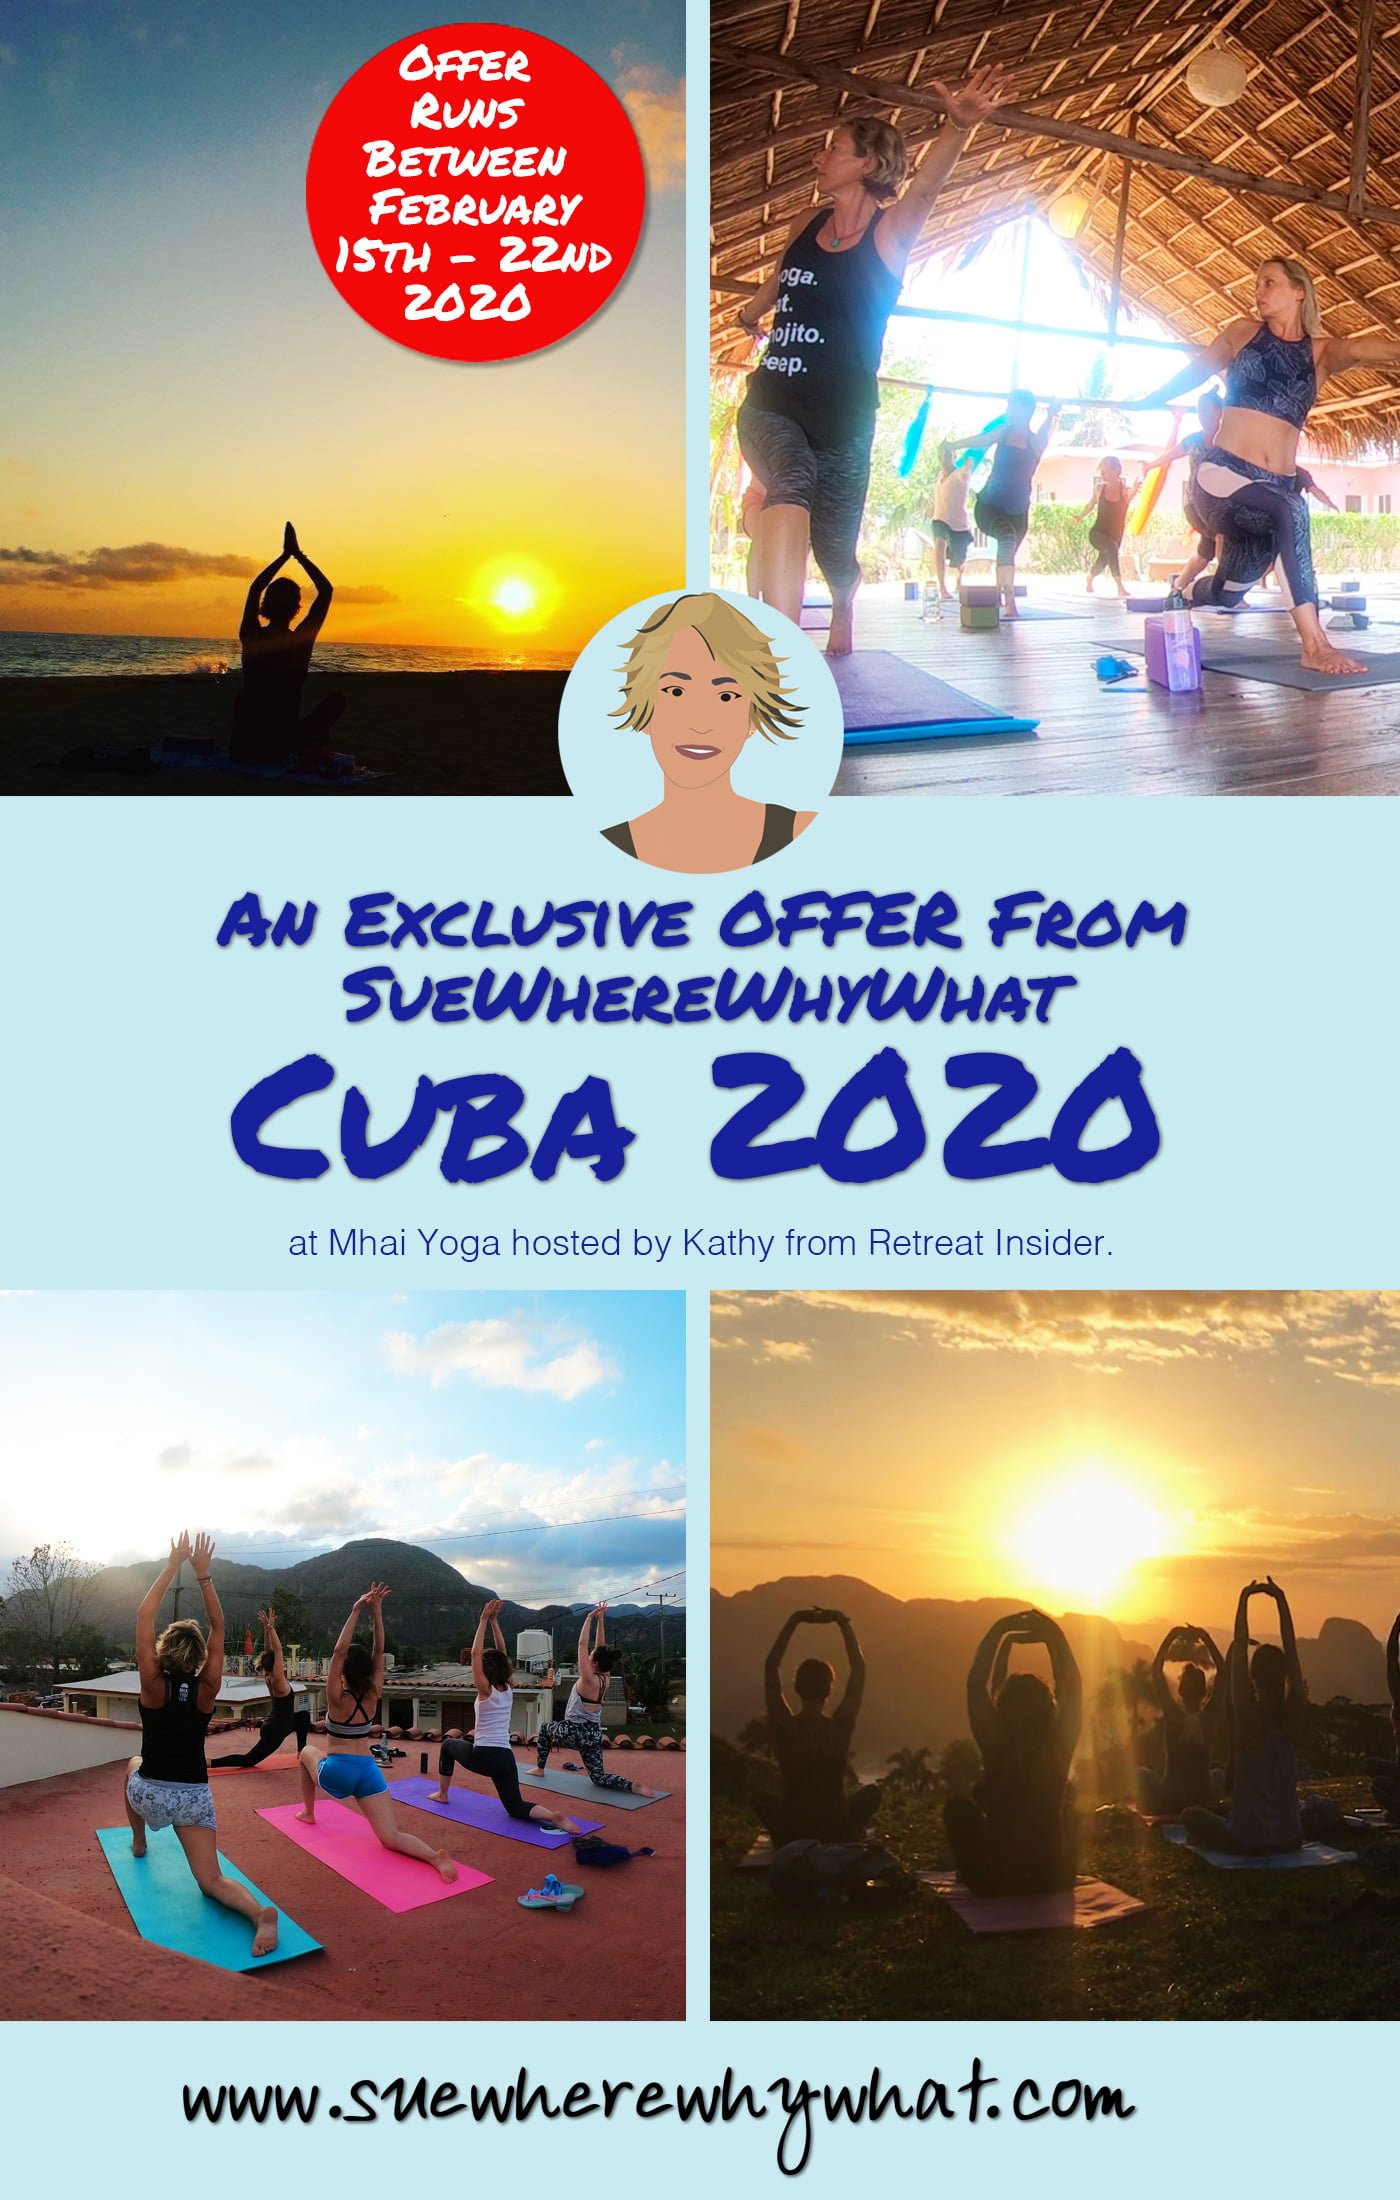 If you have read any of my posts on Cuba then you will know how much I love the island. I always leave feeling energised & invigorated in mind, body & spirit. Much of this has to do with attending a couple of amazing yoga retreats at Mhai Yoga hosted by Kathy from Retreat Insider.